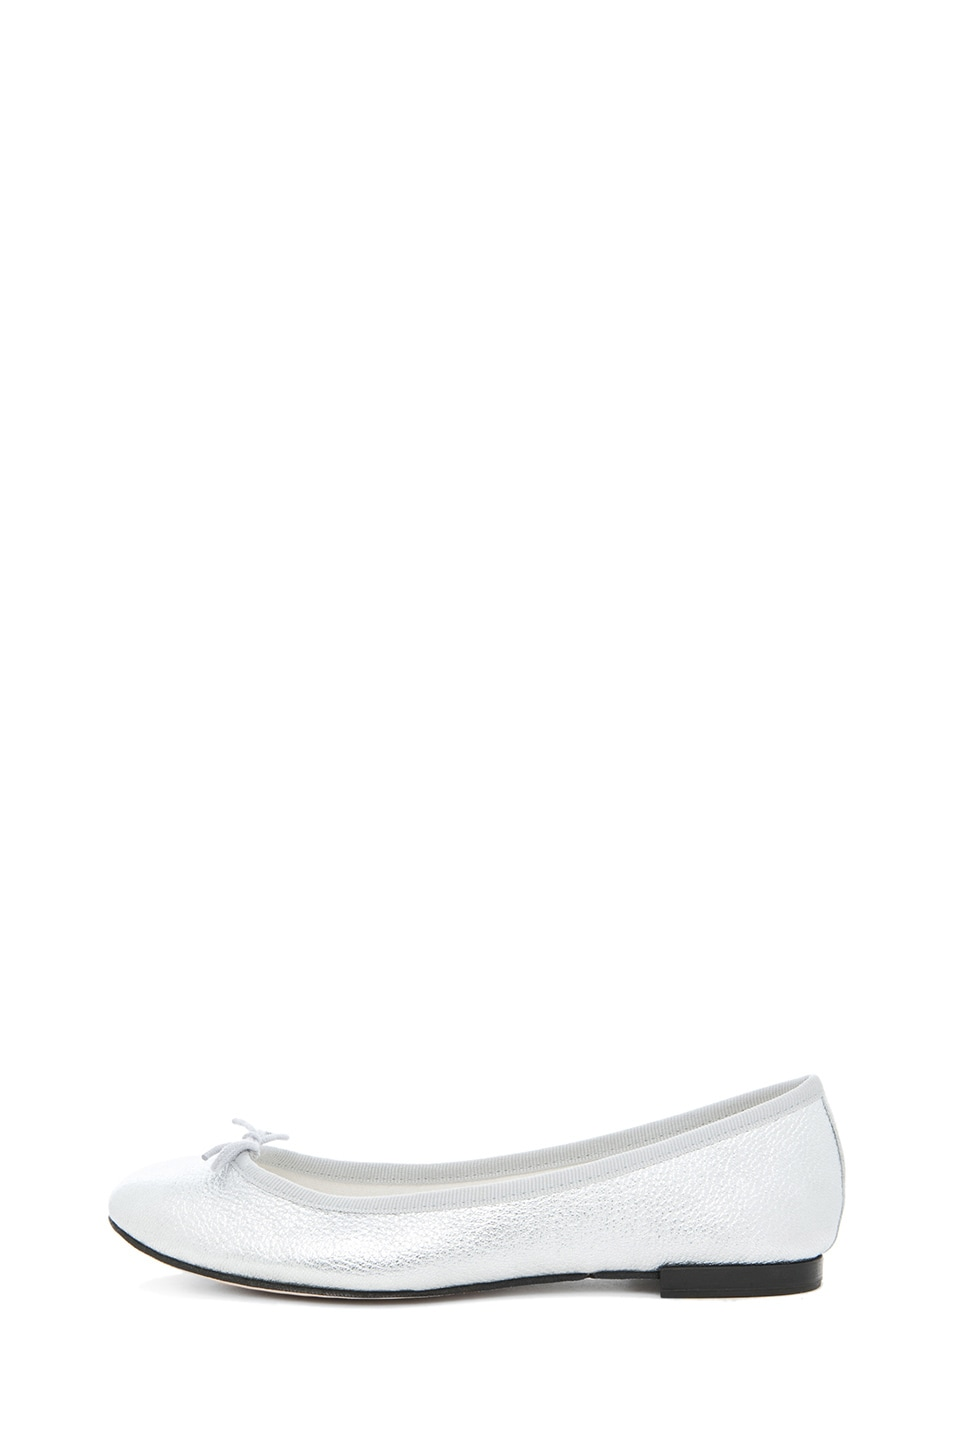 Image 1 of Repetto Leather Flat in Distressed Goatskin Silver